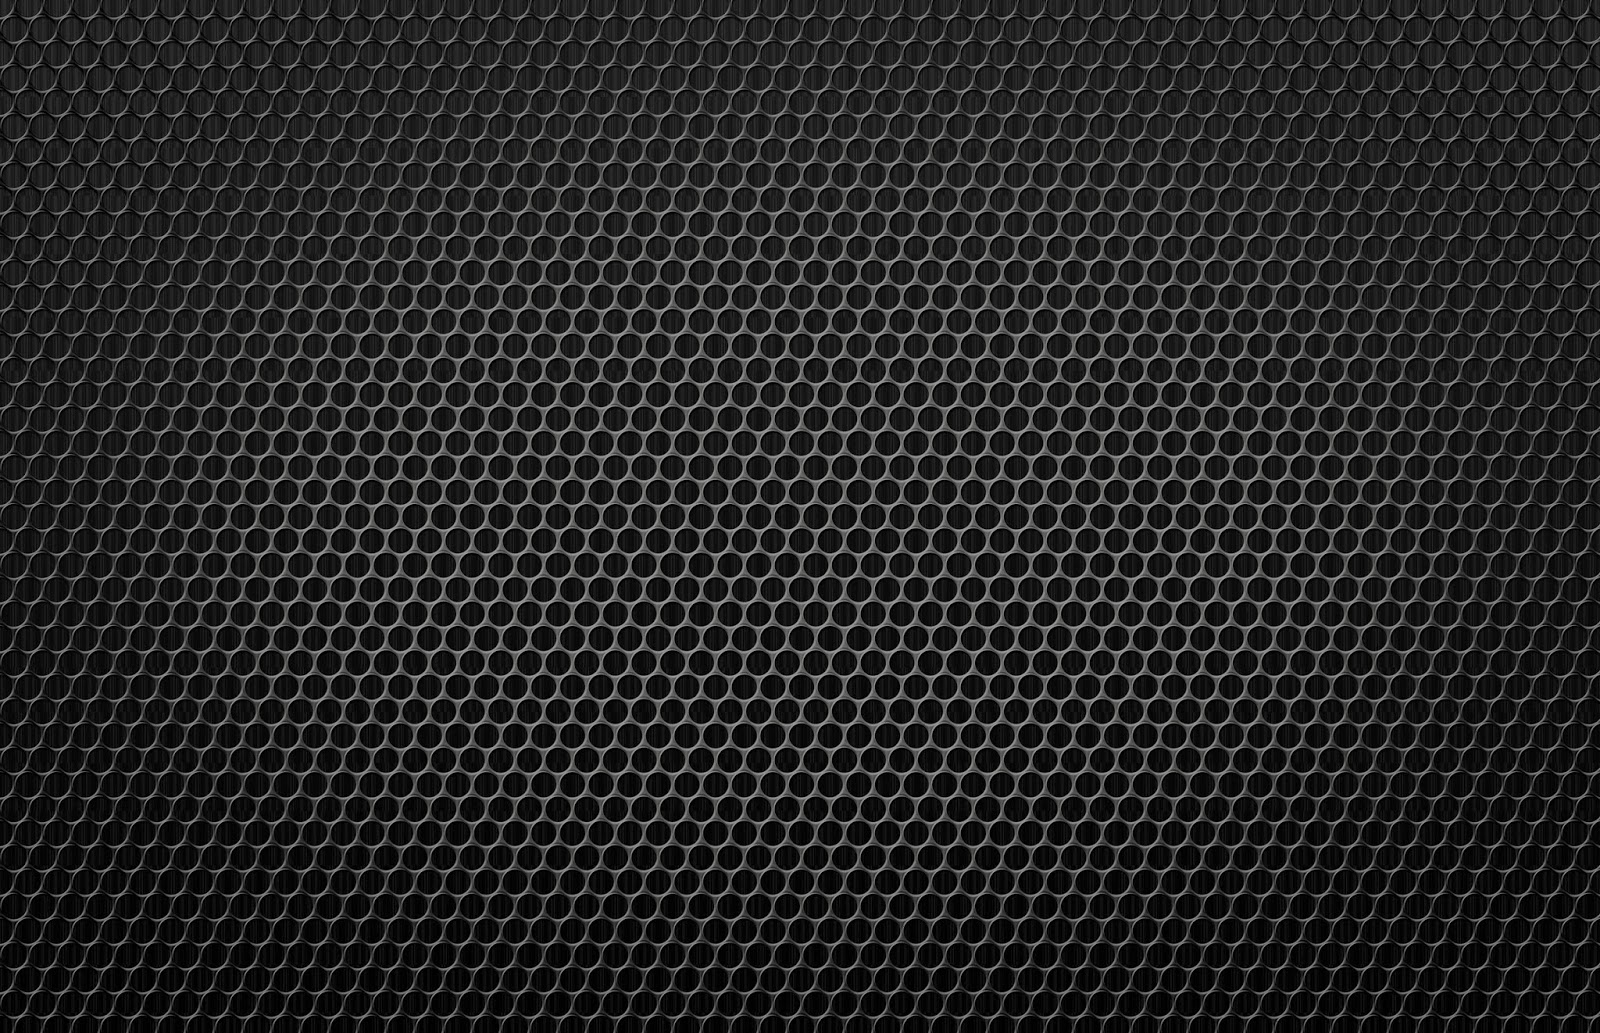 Dark textured background design patterns website images hd psd black graphics bg textured hd wallpapers designs for mobile toneelgroepblik